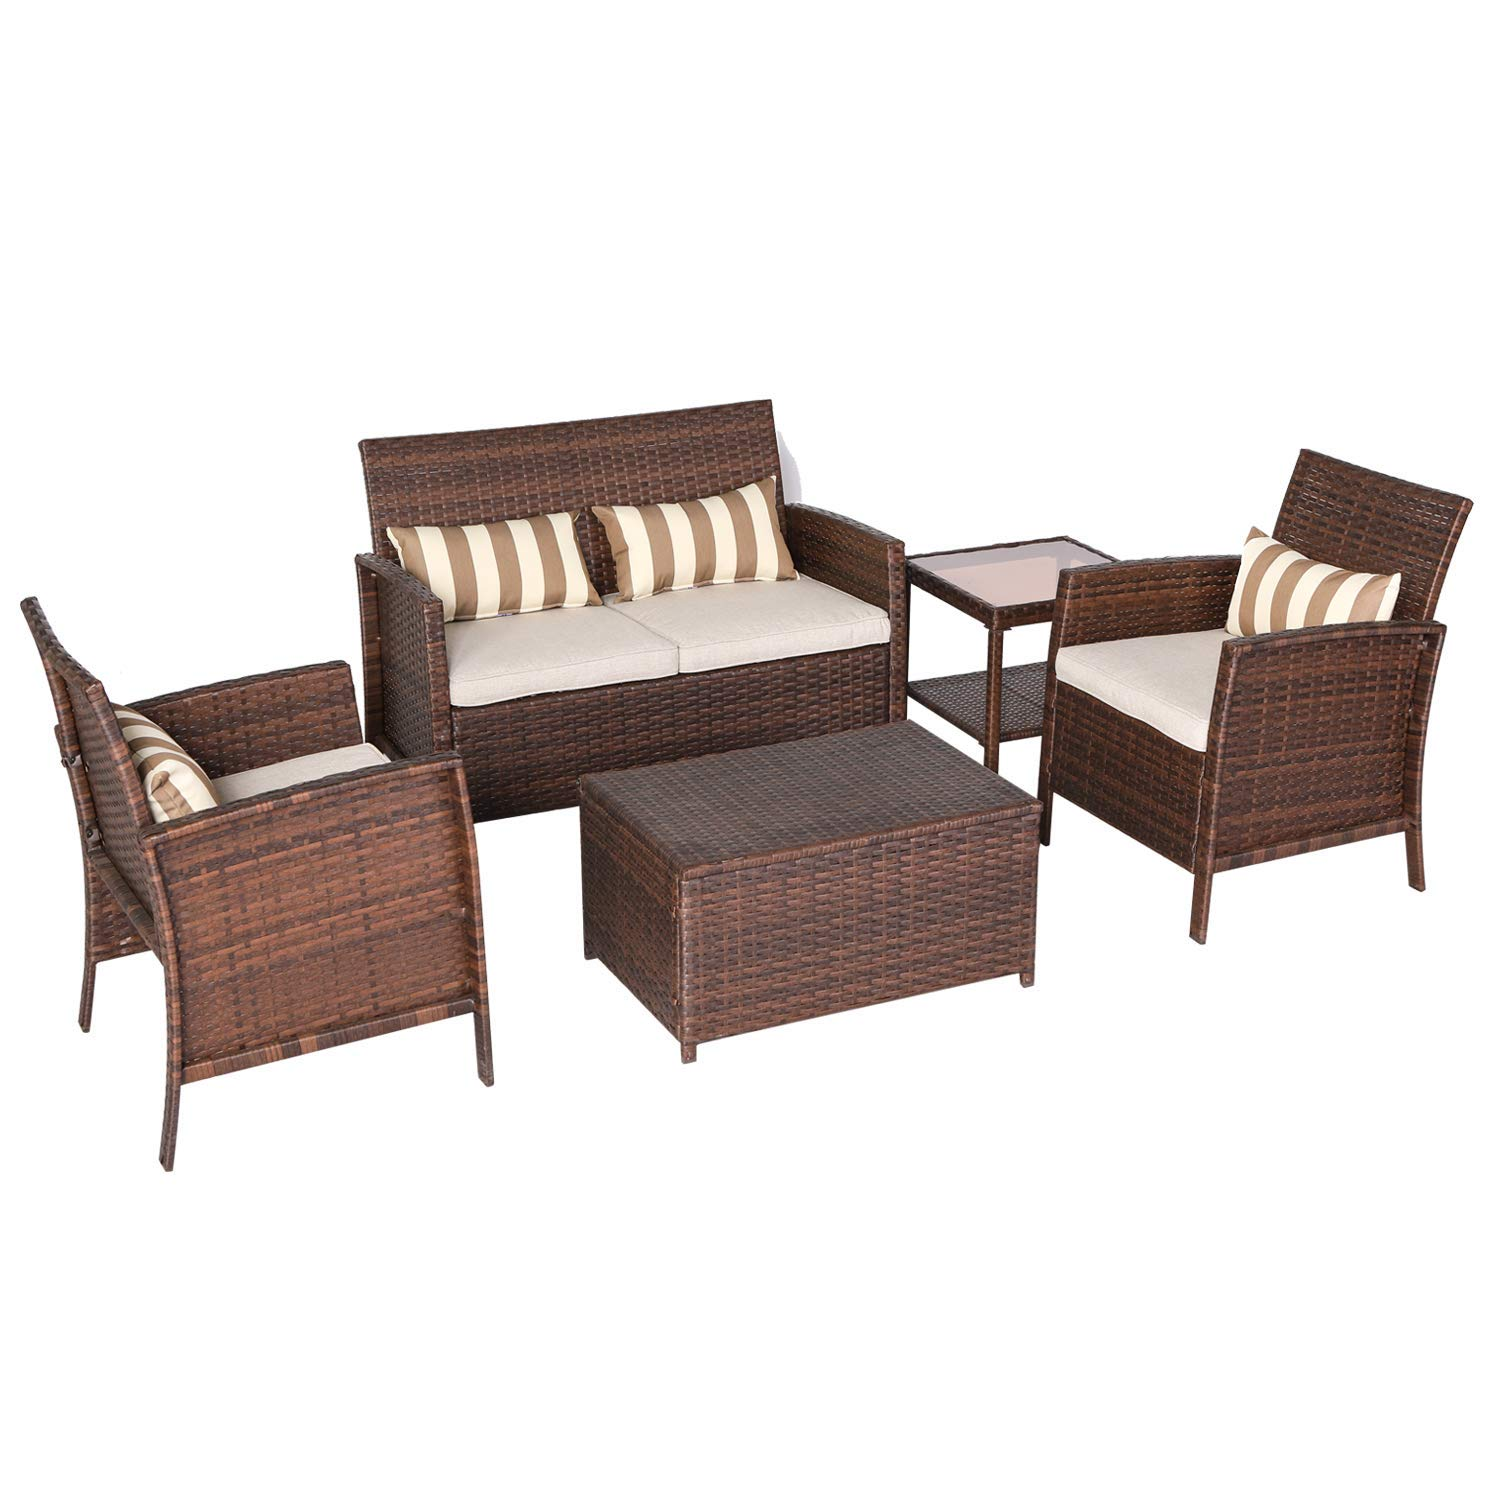 Solaura 5-Piece Outdoor Furniture Brown Wicker Conversation Set with Light Brown Cushions & Coffee Table